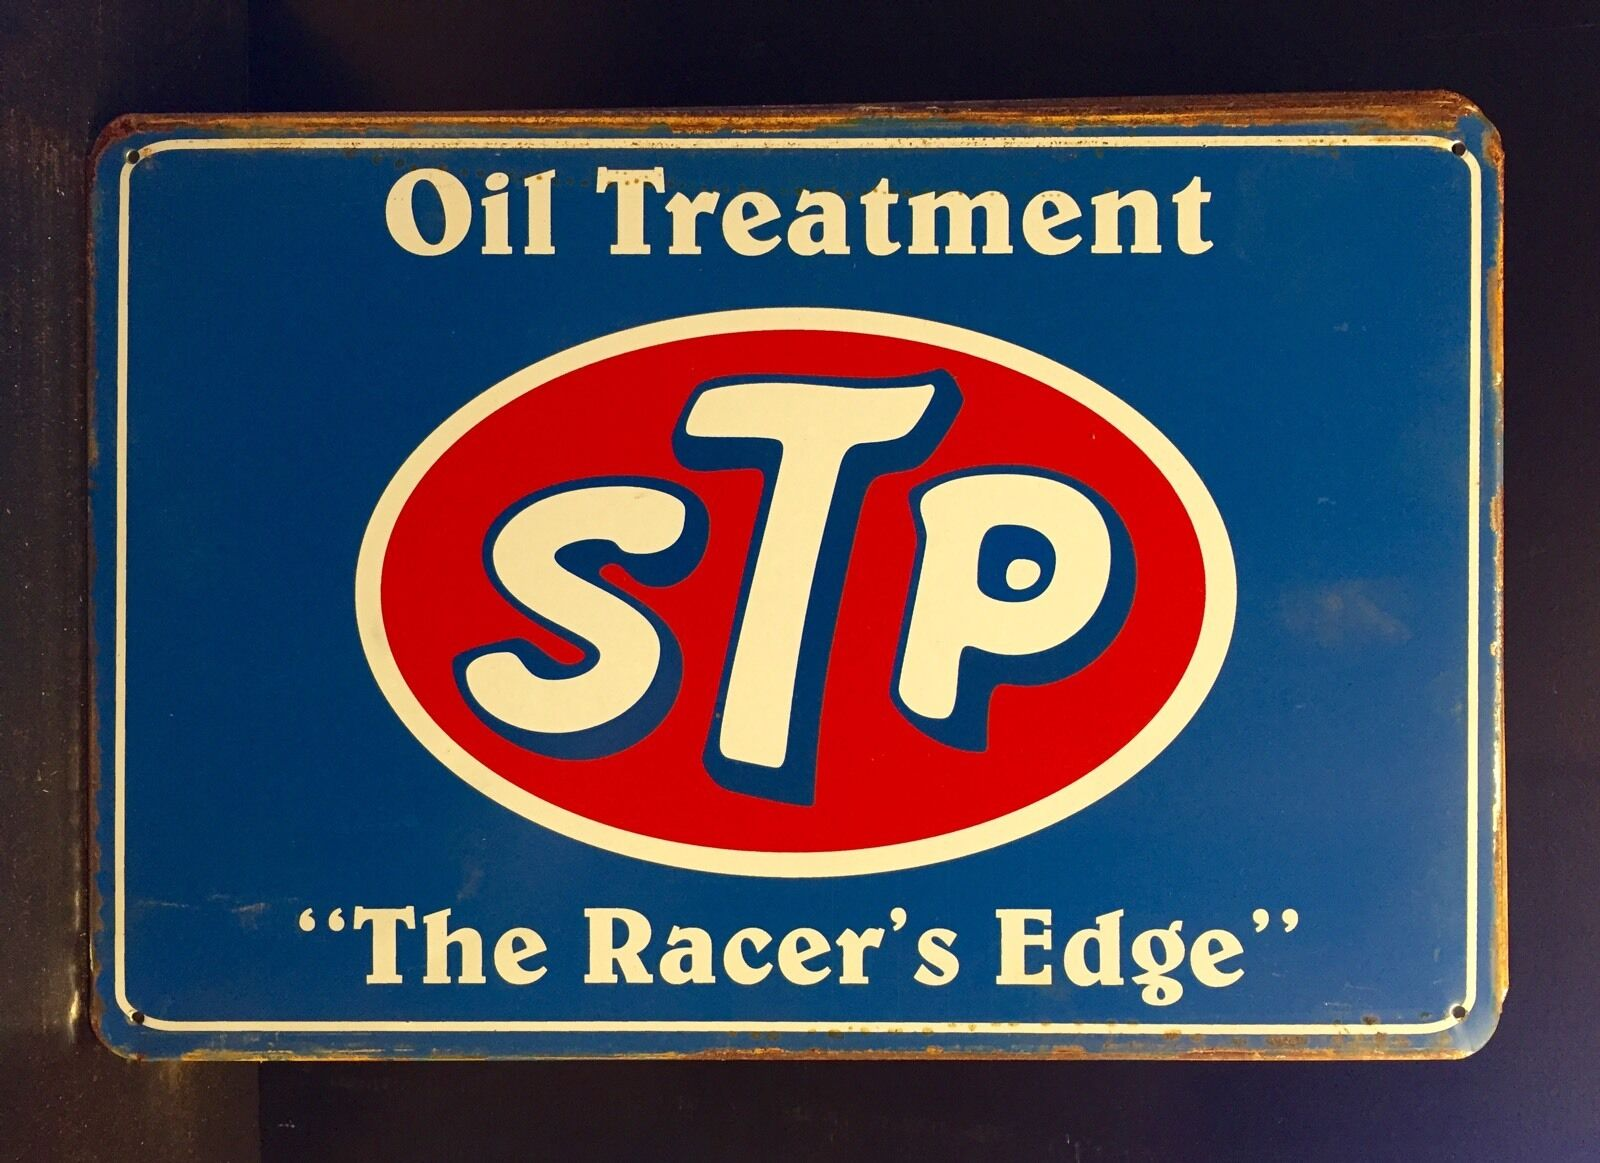 Stp motor oil treatment metal sign vtg retro garage wall for Plaque w garage assurance